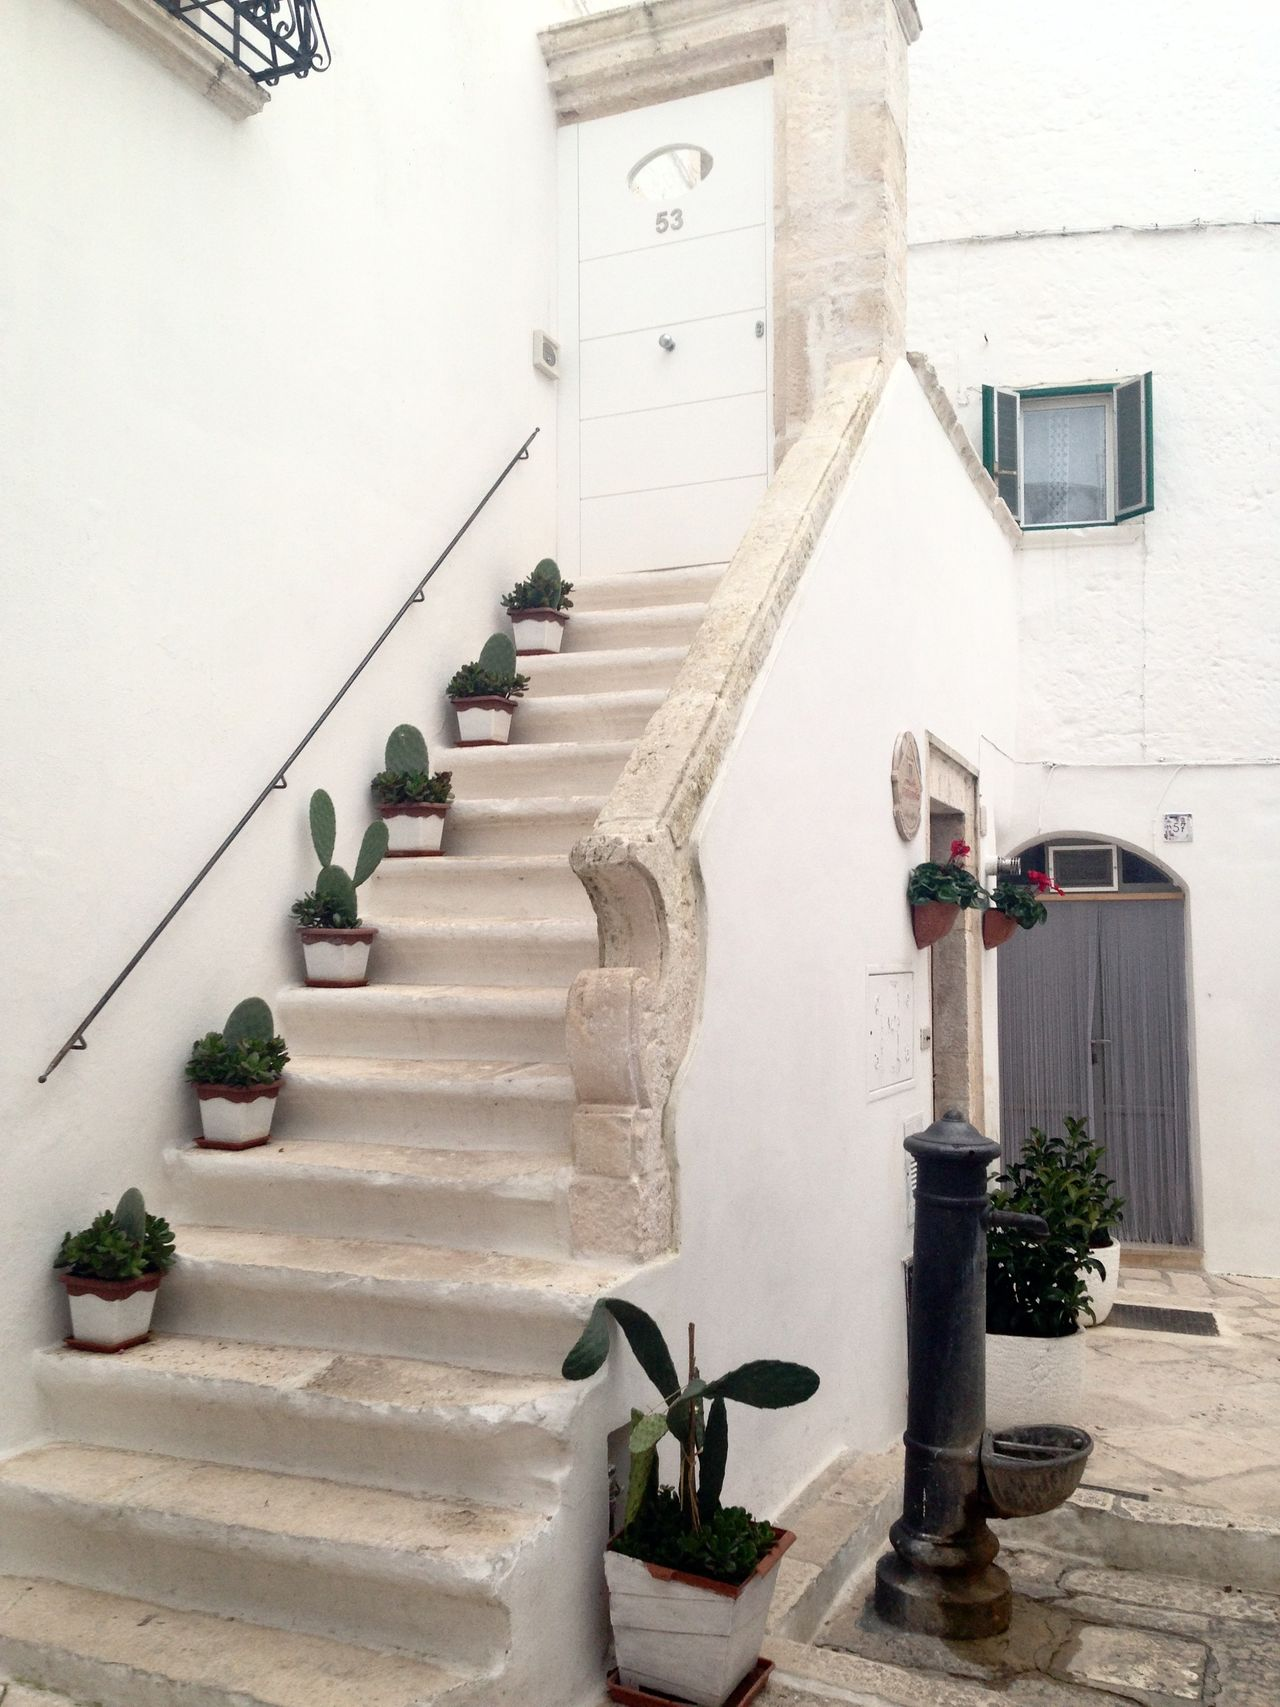 Locorotondo Cityscape Italy Sud Beautiful View Stairs_steps Stairs